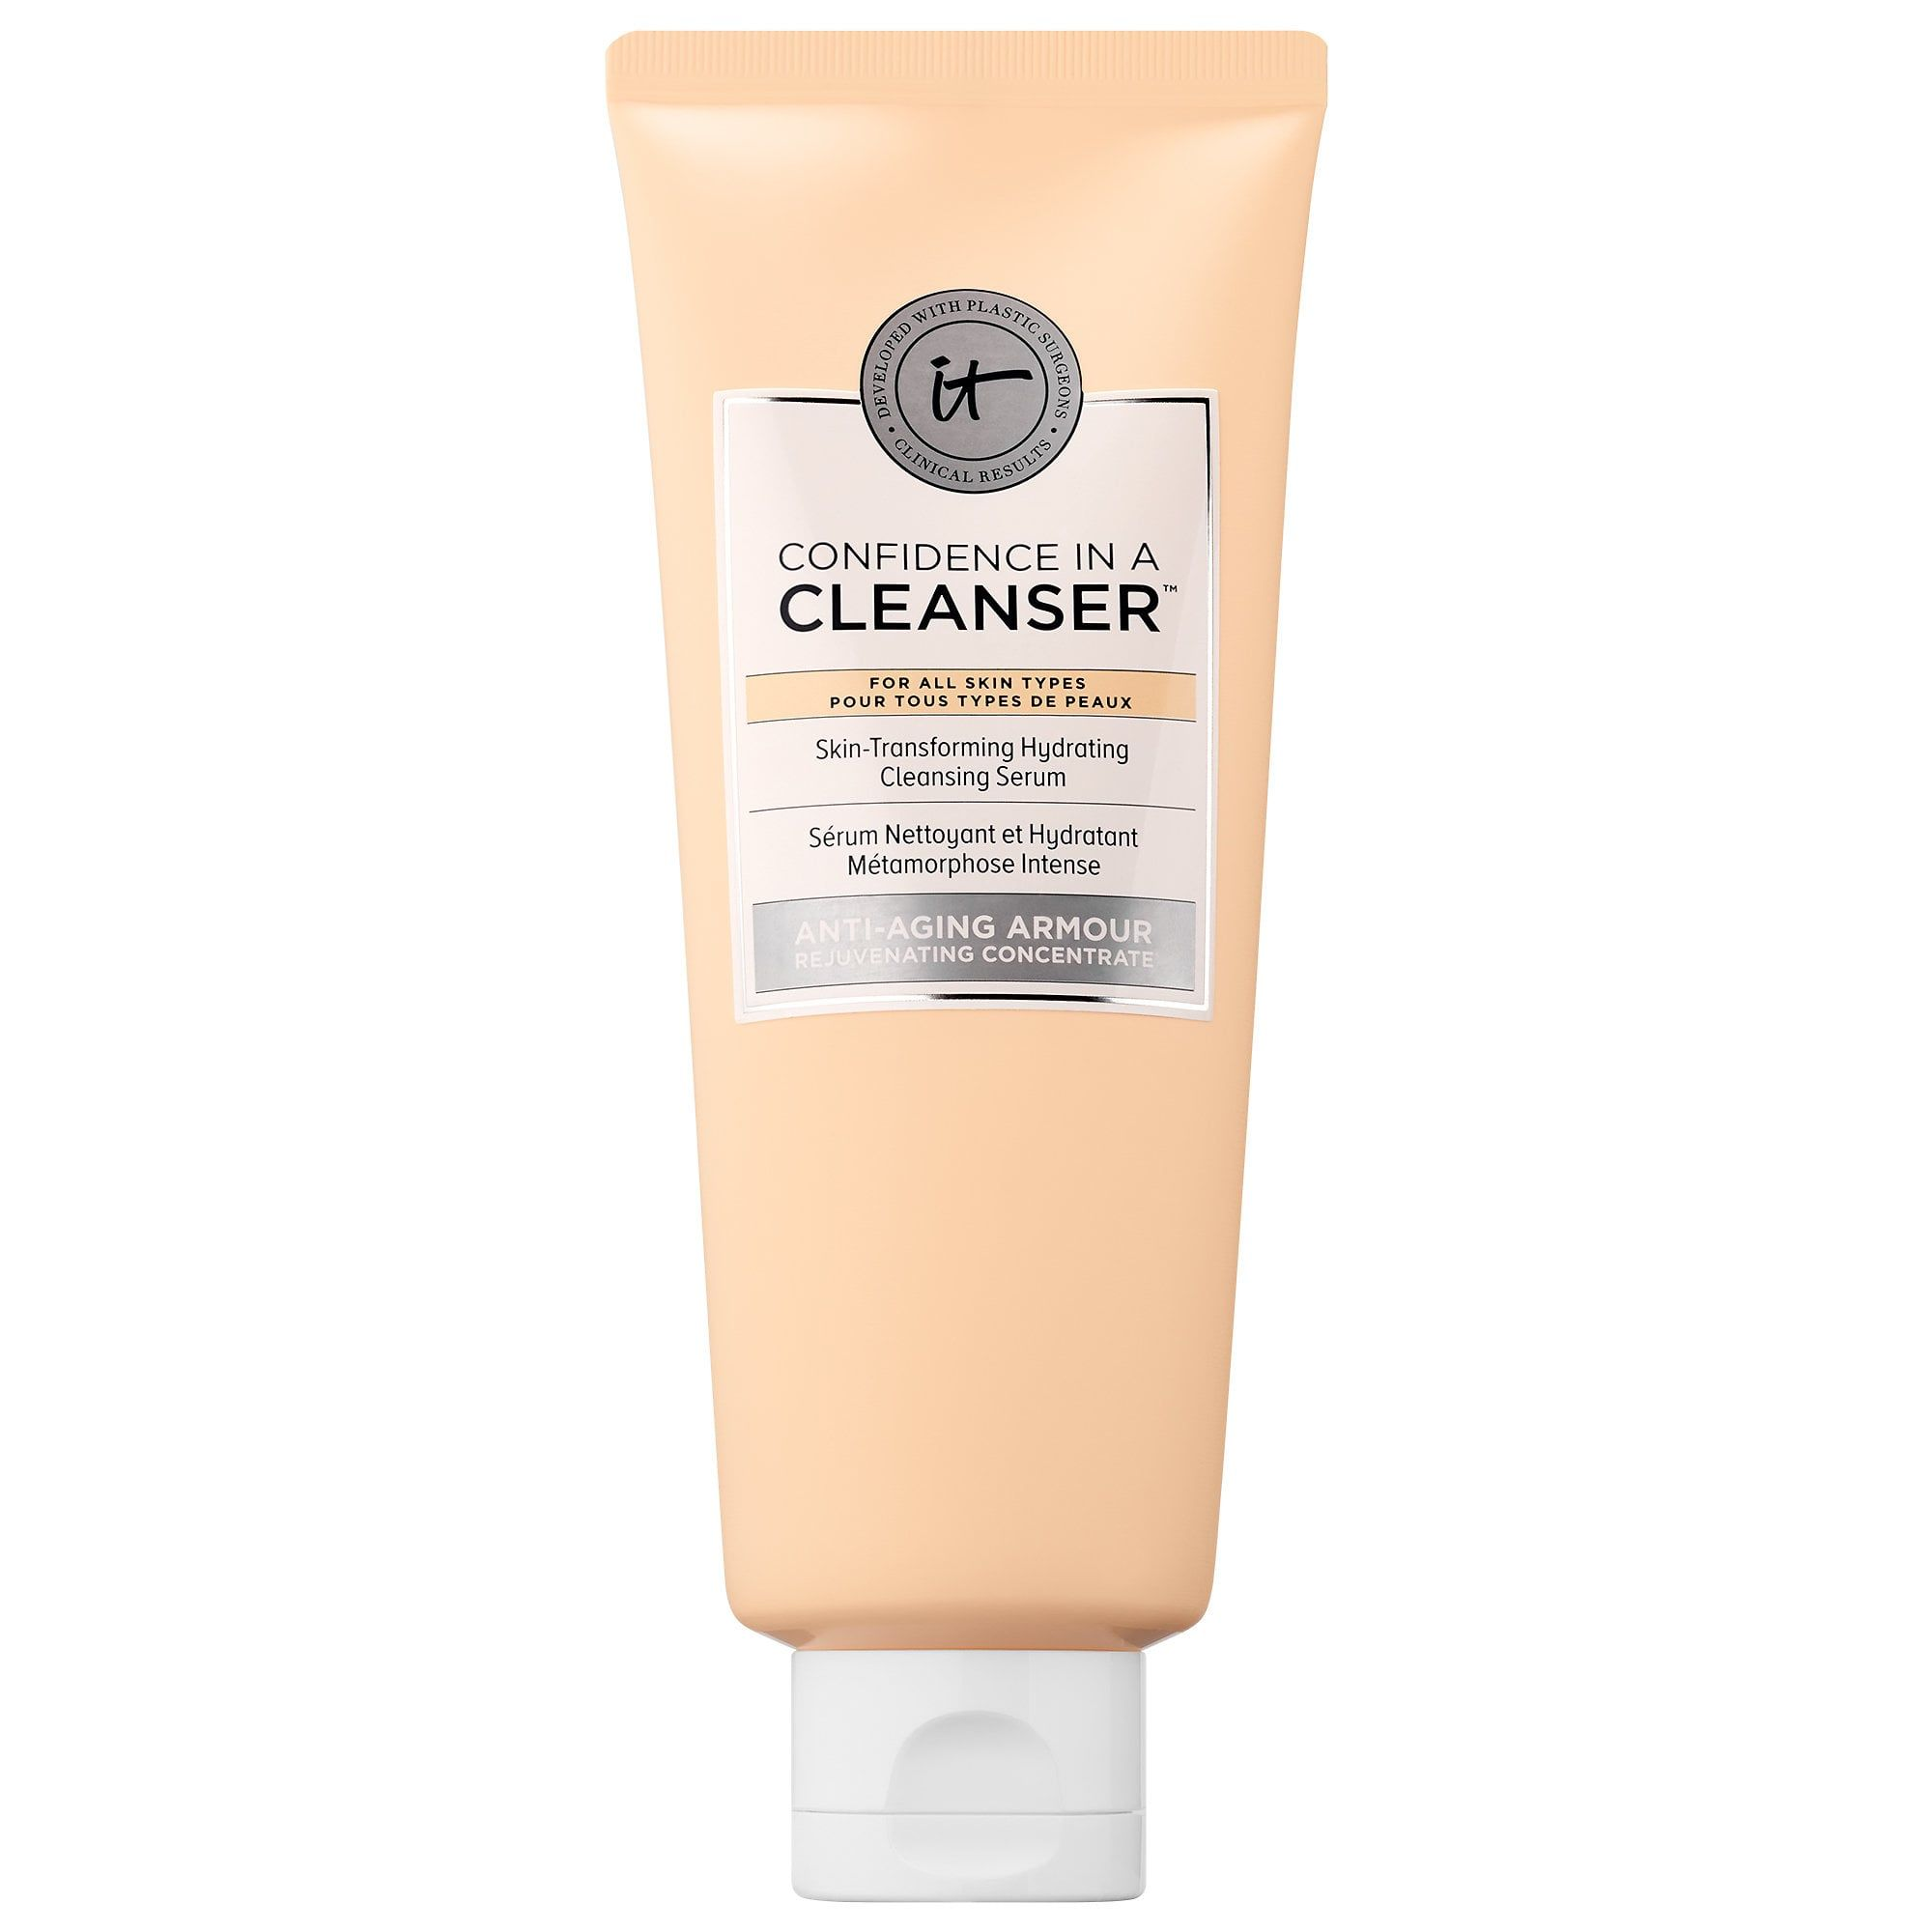 Confidence in a Cleanser Cleanser, Facial cleanser, Sephora